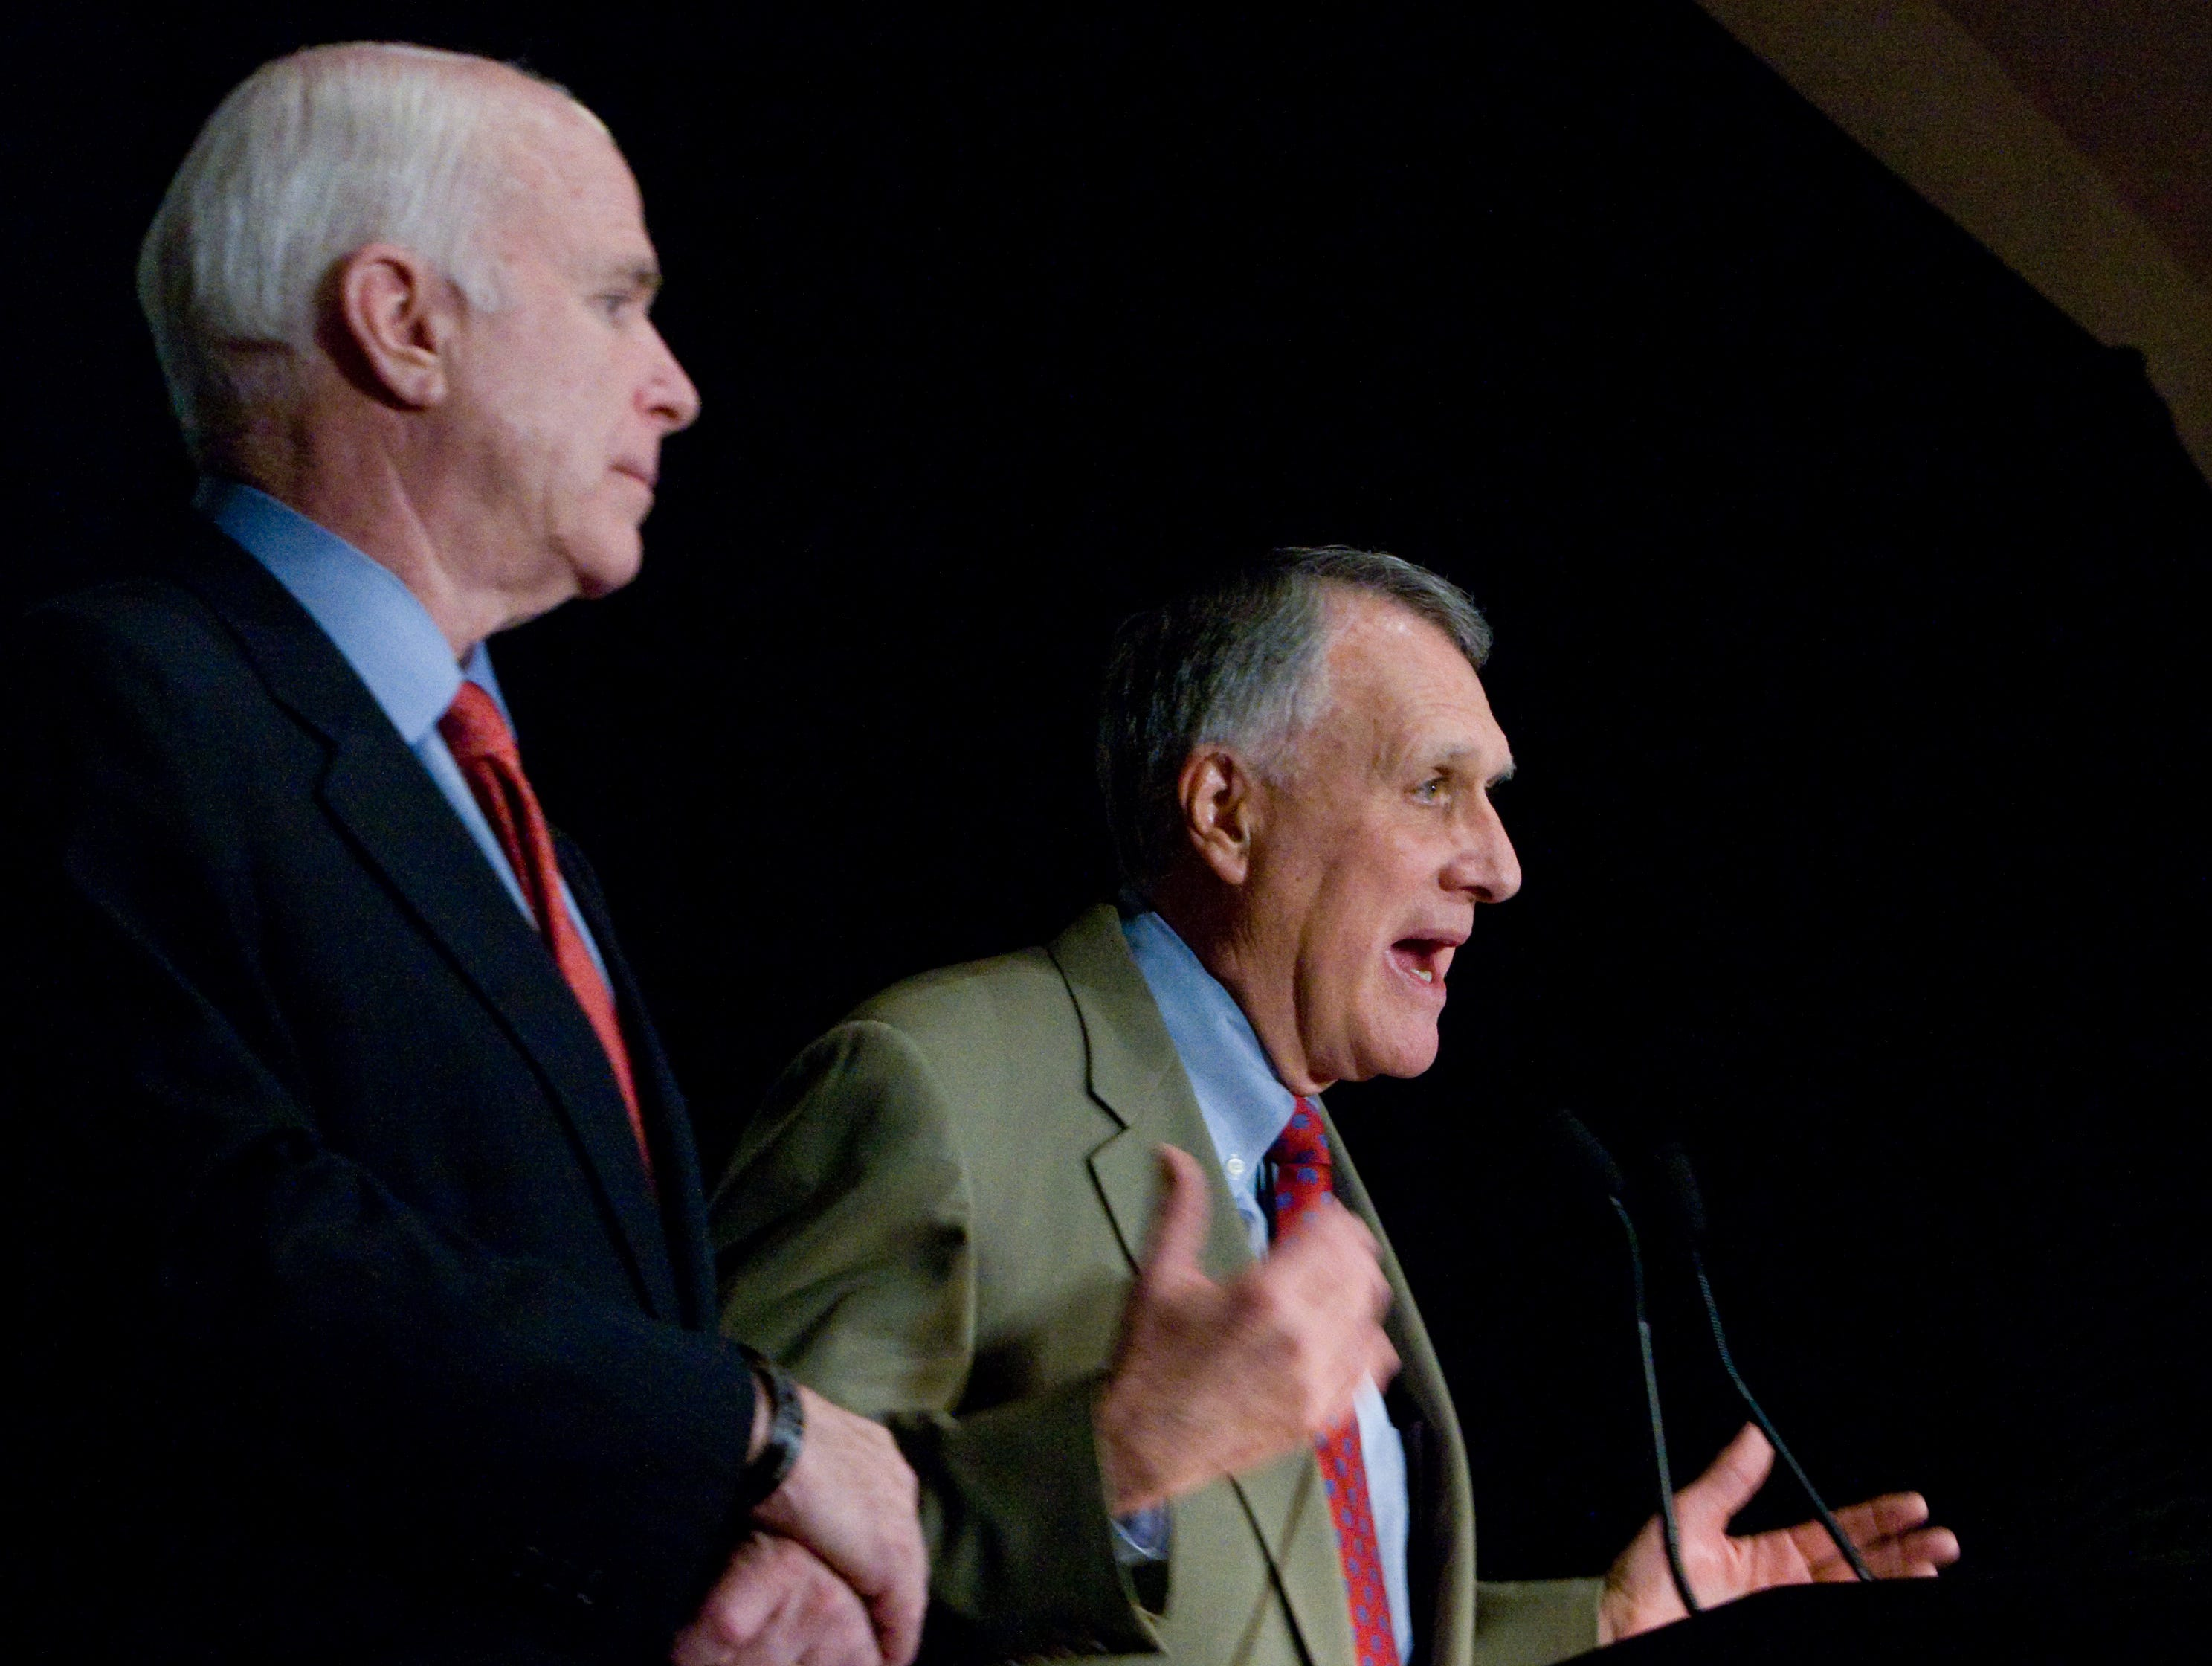 Arizona Senators John McCain and Jon Kyl speak during Wednesday's Arizona Chamber of Commerce luncheon at the Scottsdale Plaza Resort, April 15, 2009.